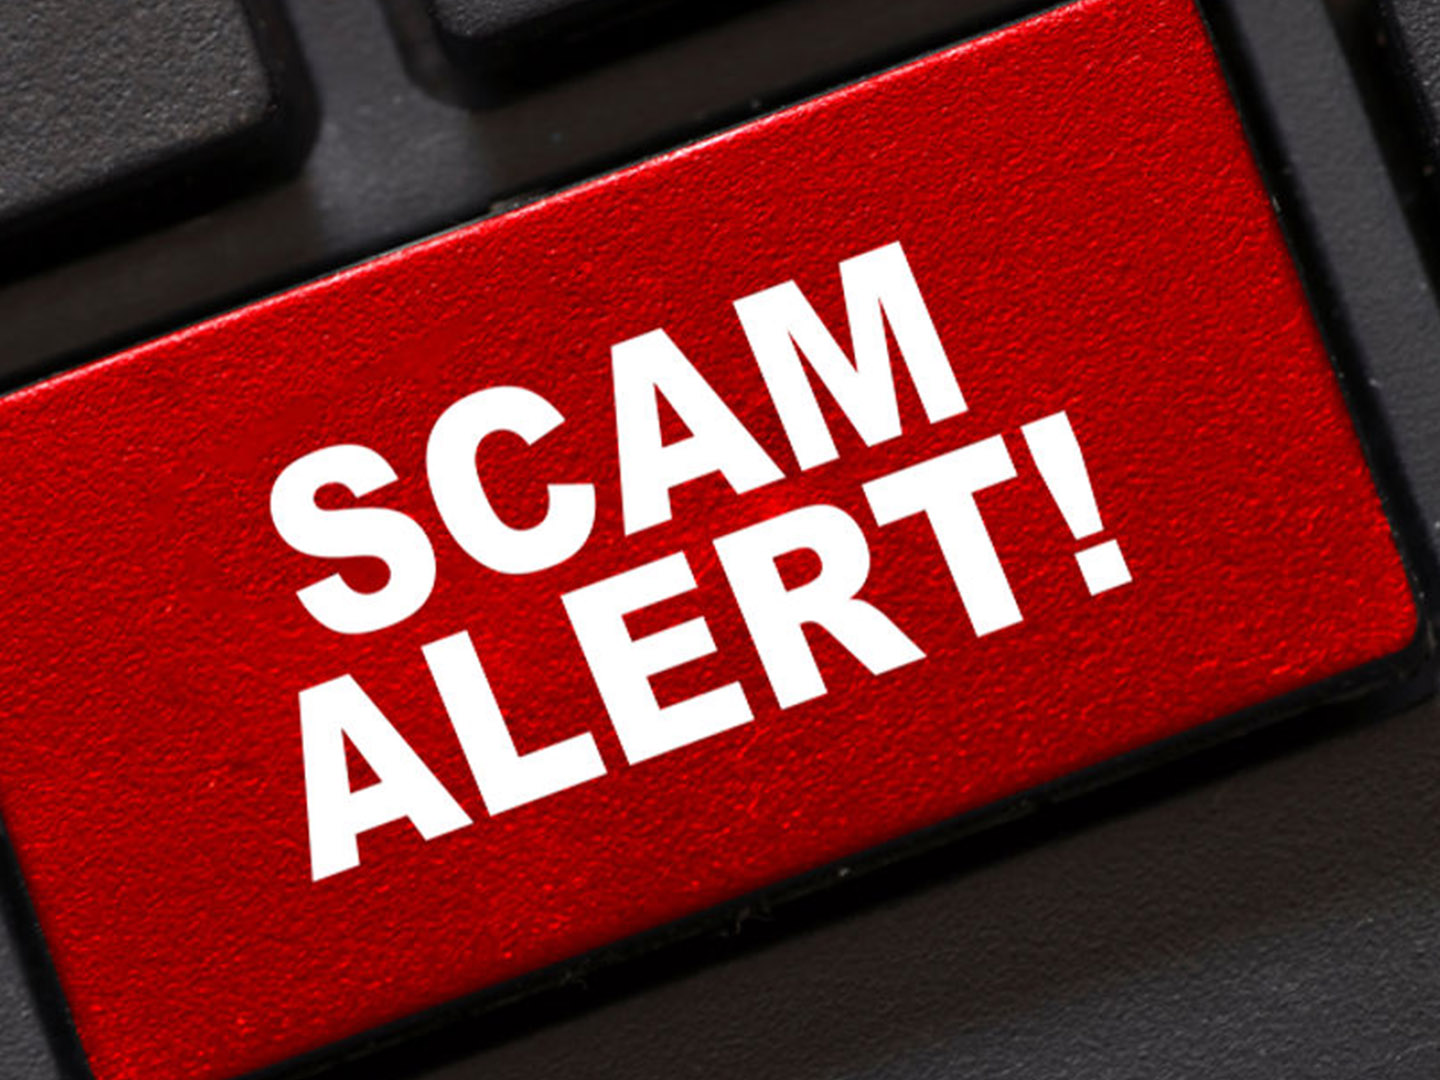 Beware of scam emails pretending to be from HMRC